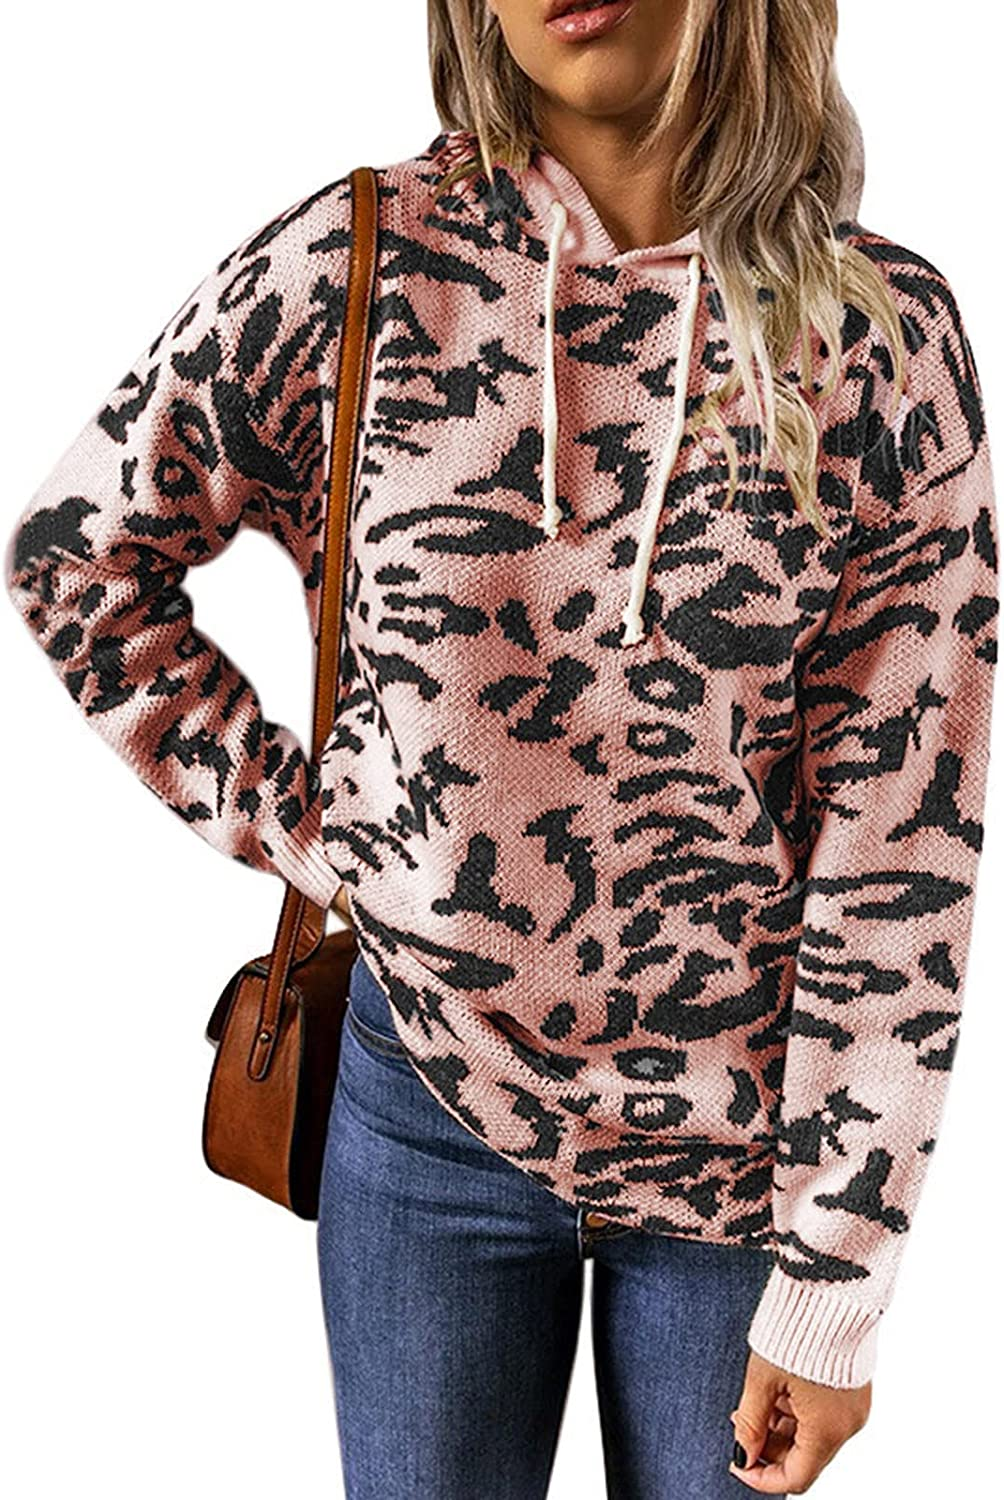 XINXX Women's Knitted Sweaters Long Max 67% OFF Max 74% OFF Pullo Sleeve Crewneck Hoodie